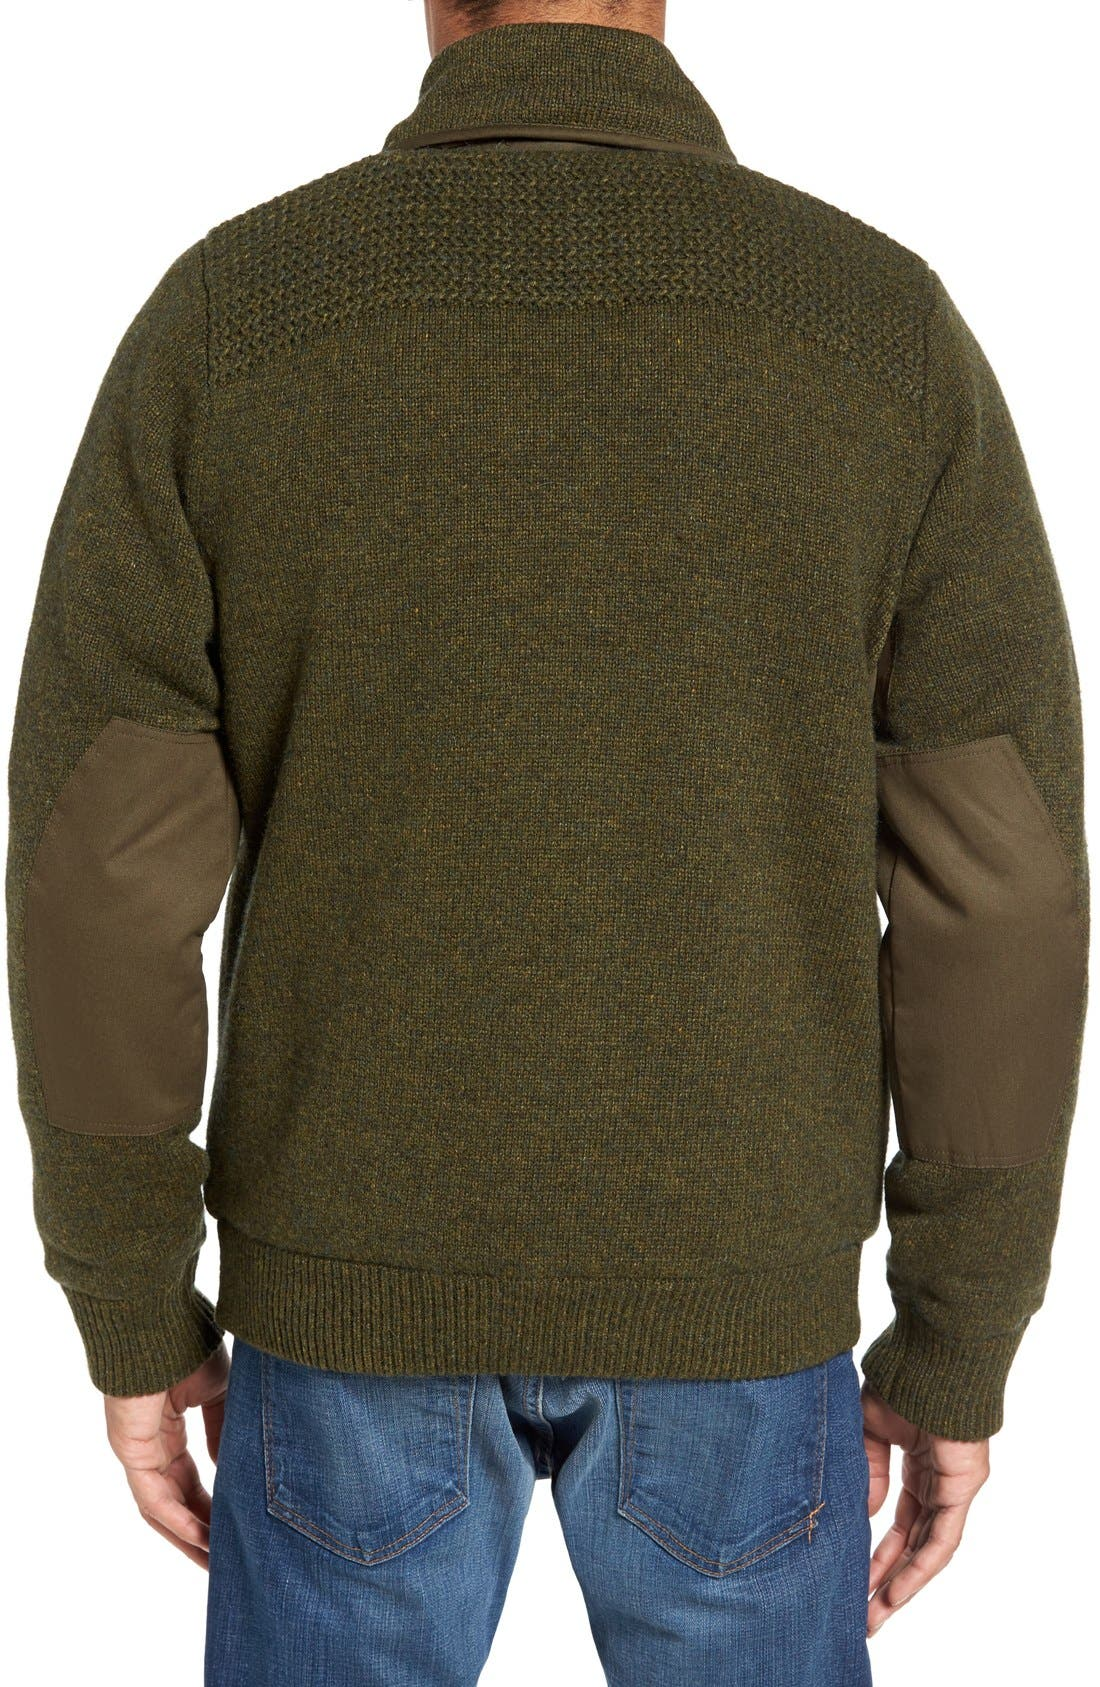 Military Sherpa-Lined Sweater Jacket,                             Alternate thumbnail 14, color,